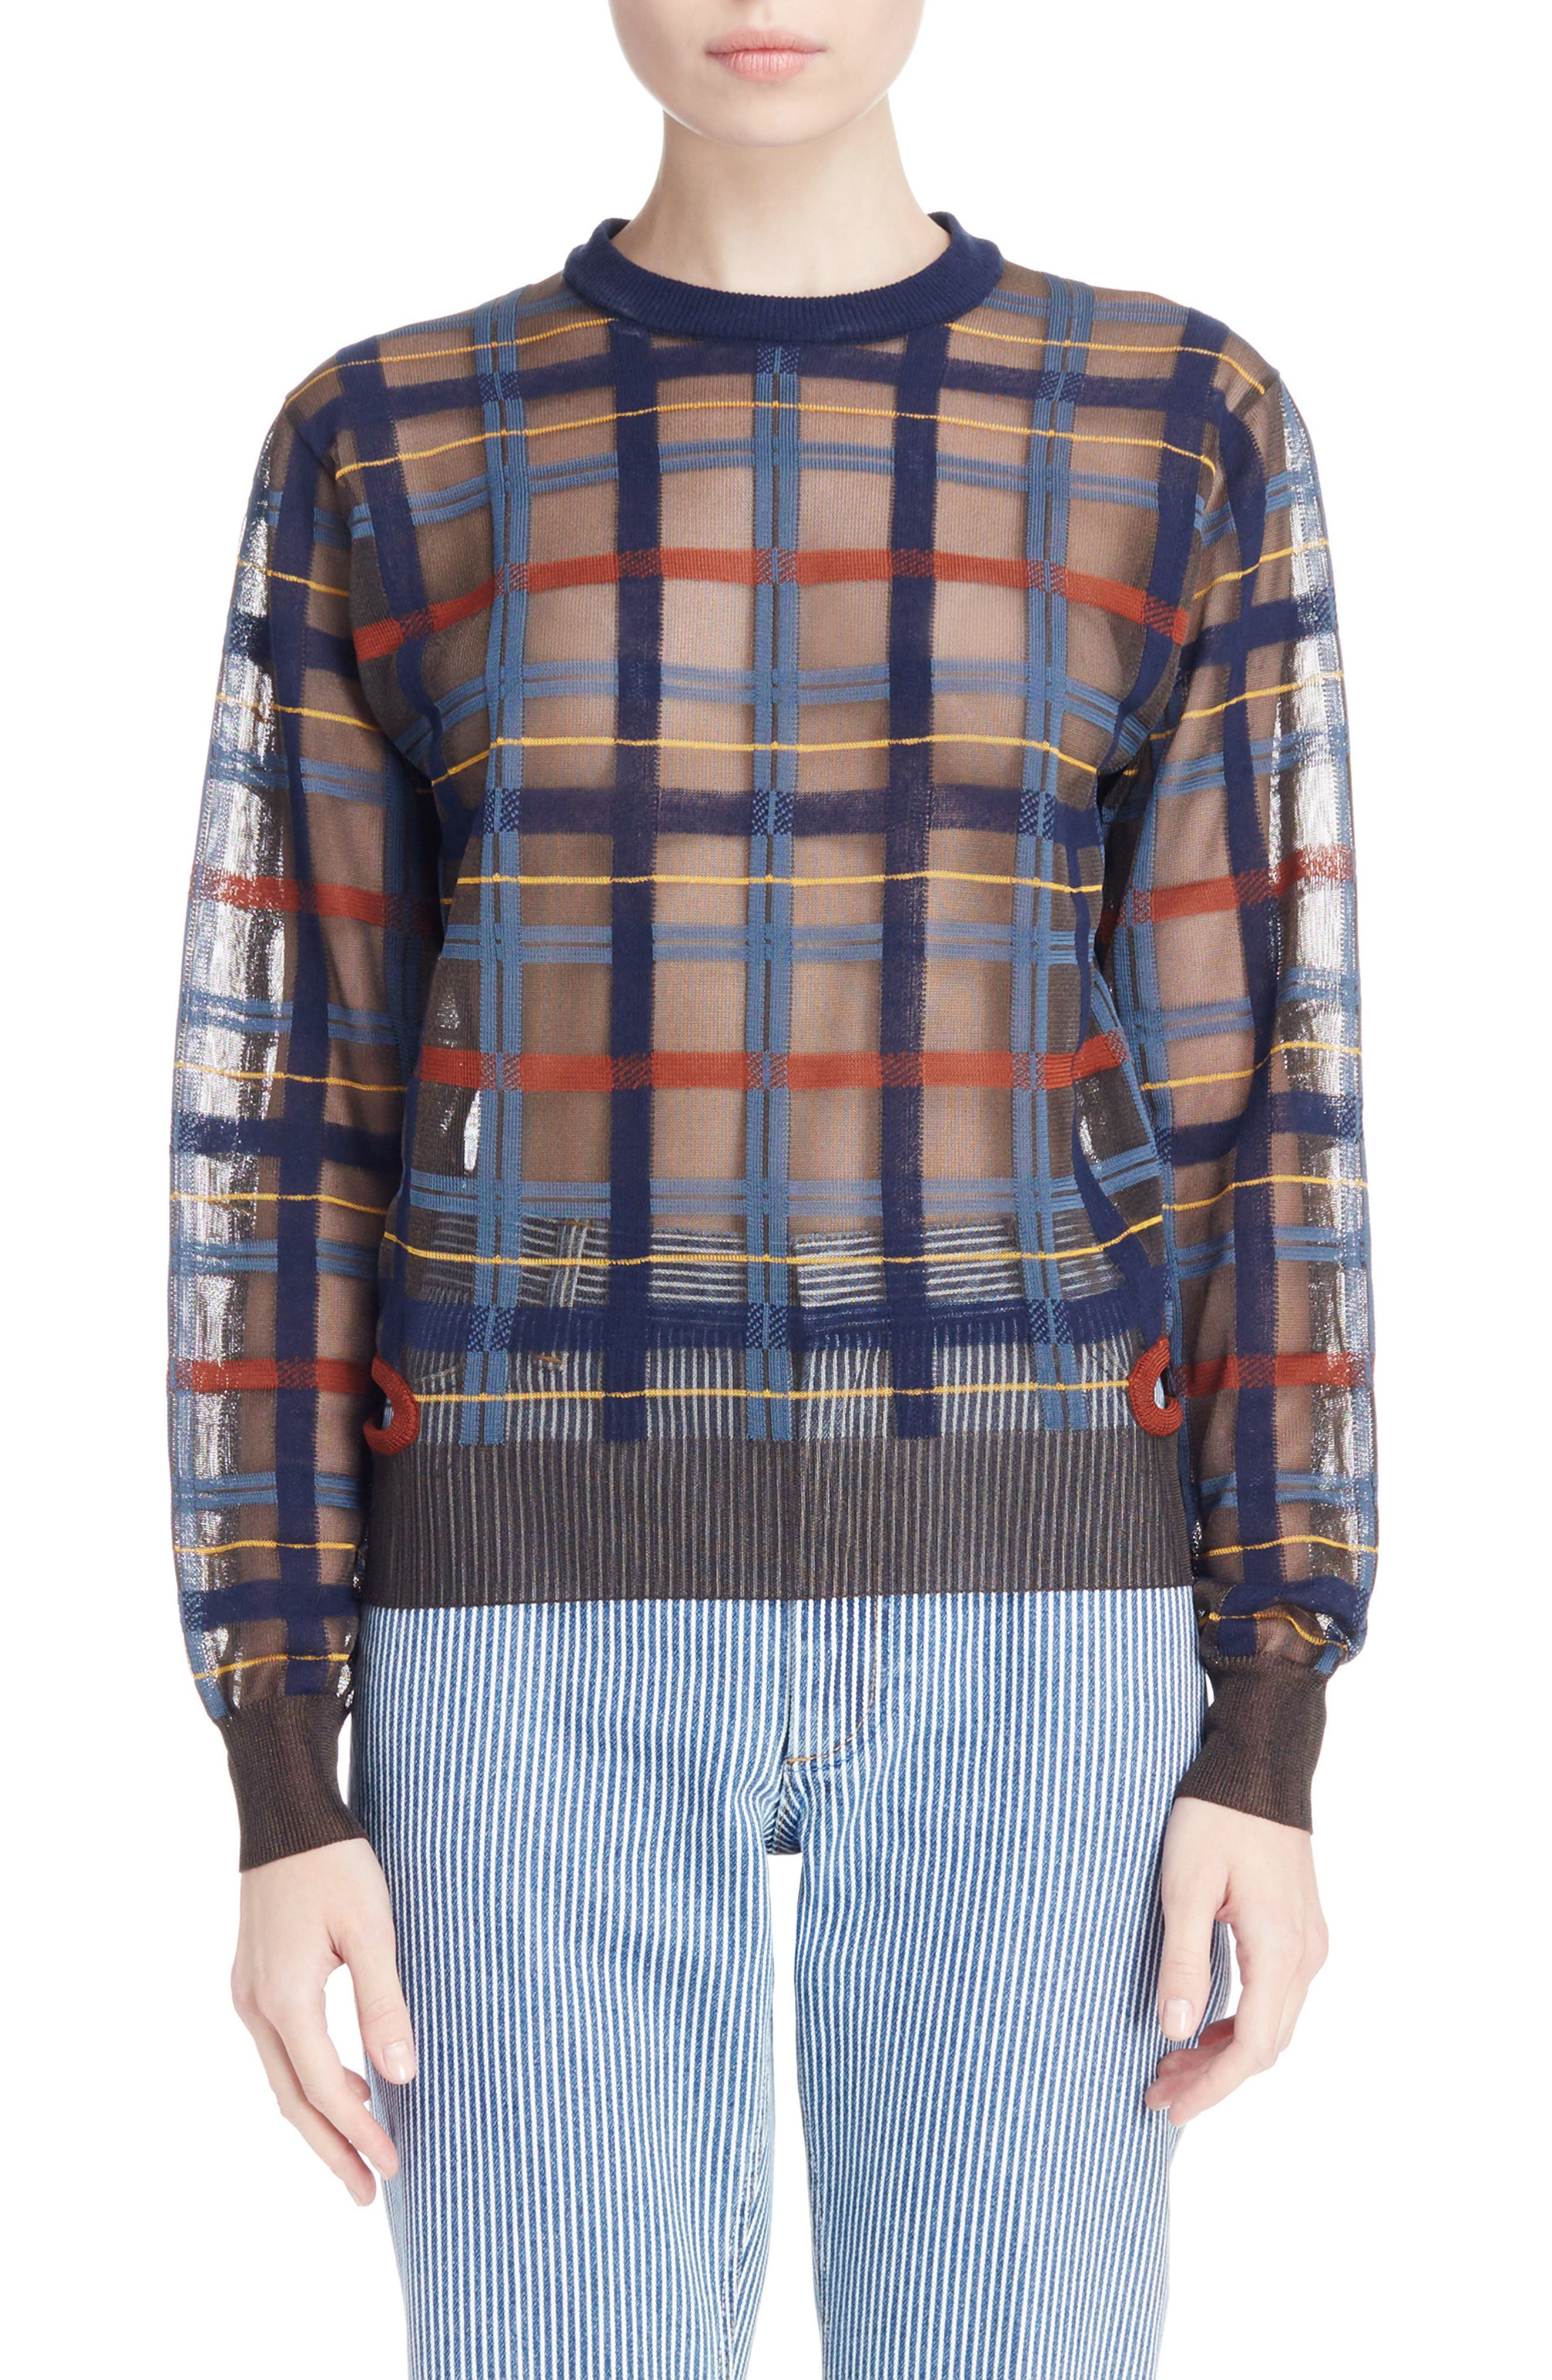 Alternate Image 1 Selected - Toga Check Knit Sweater